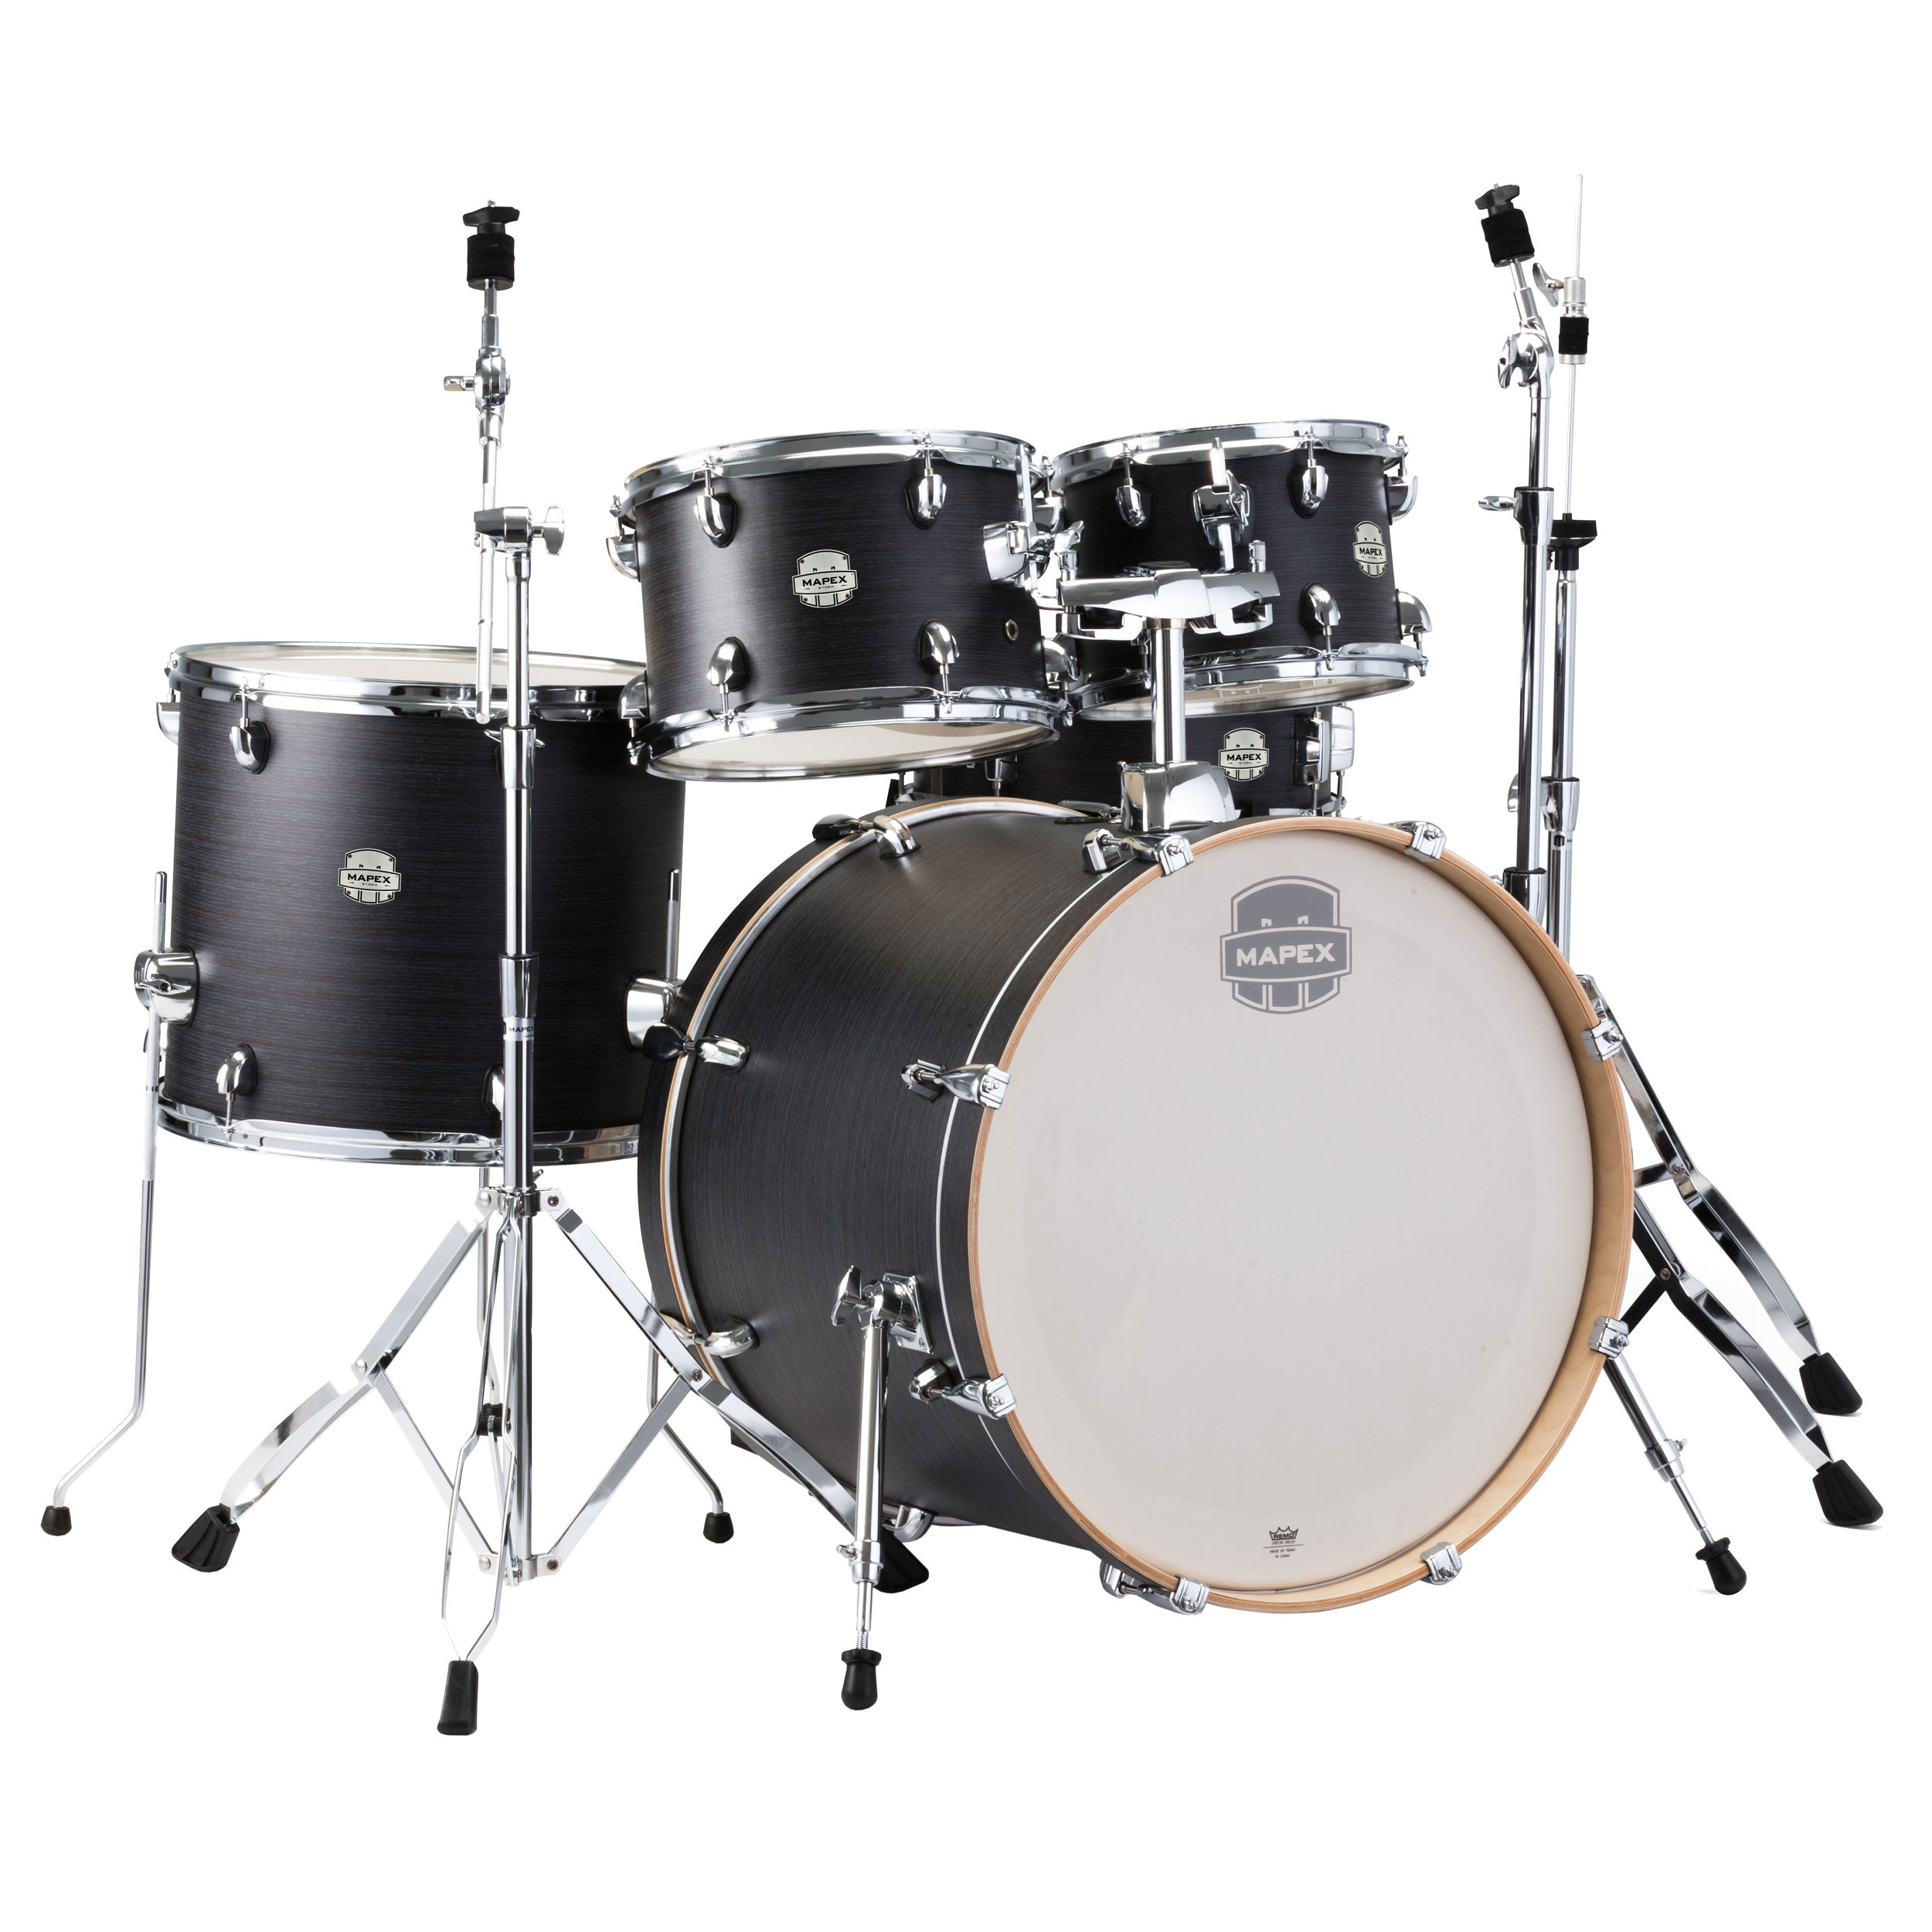 """Mapex Storm 5-Piece Fusion Drum Set (20"""" Bass, 10/12/14"""" Toms, 14"""" Snare) with Hardware"""